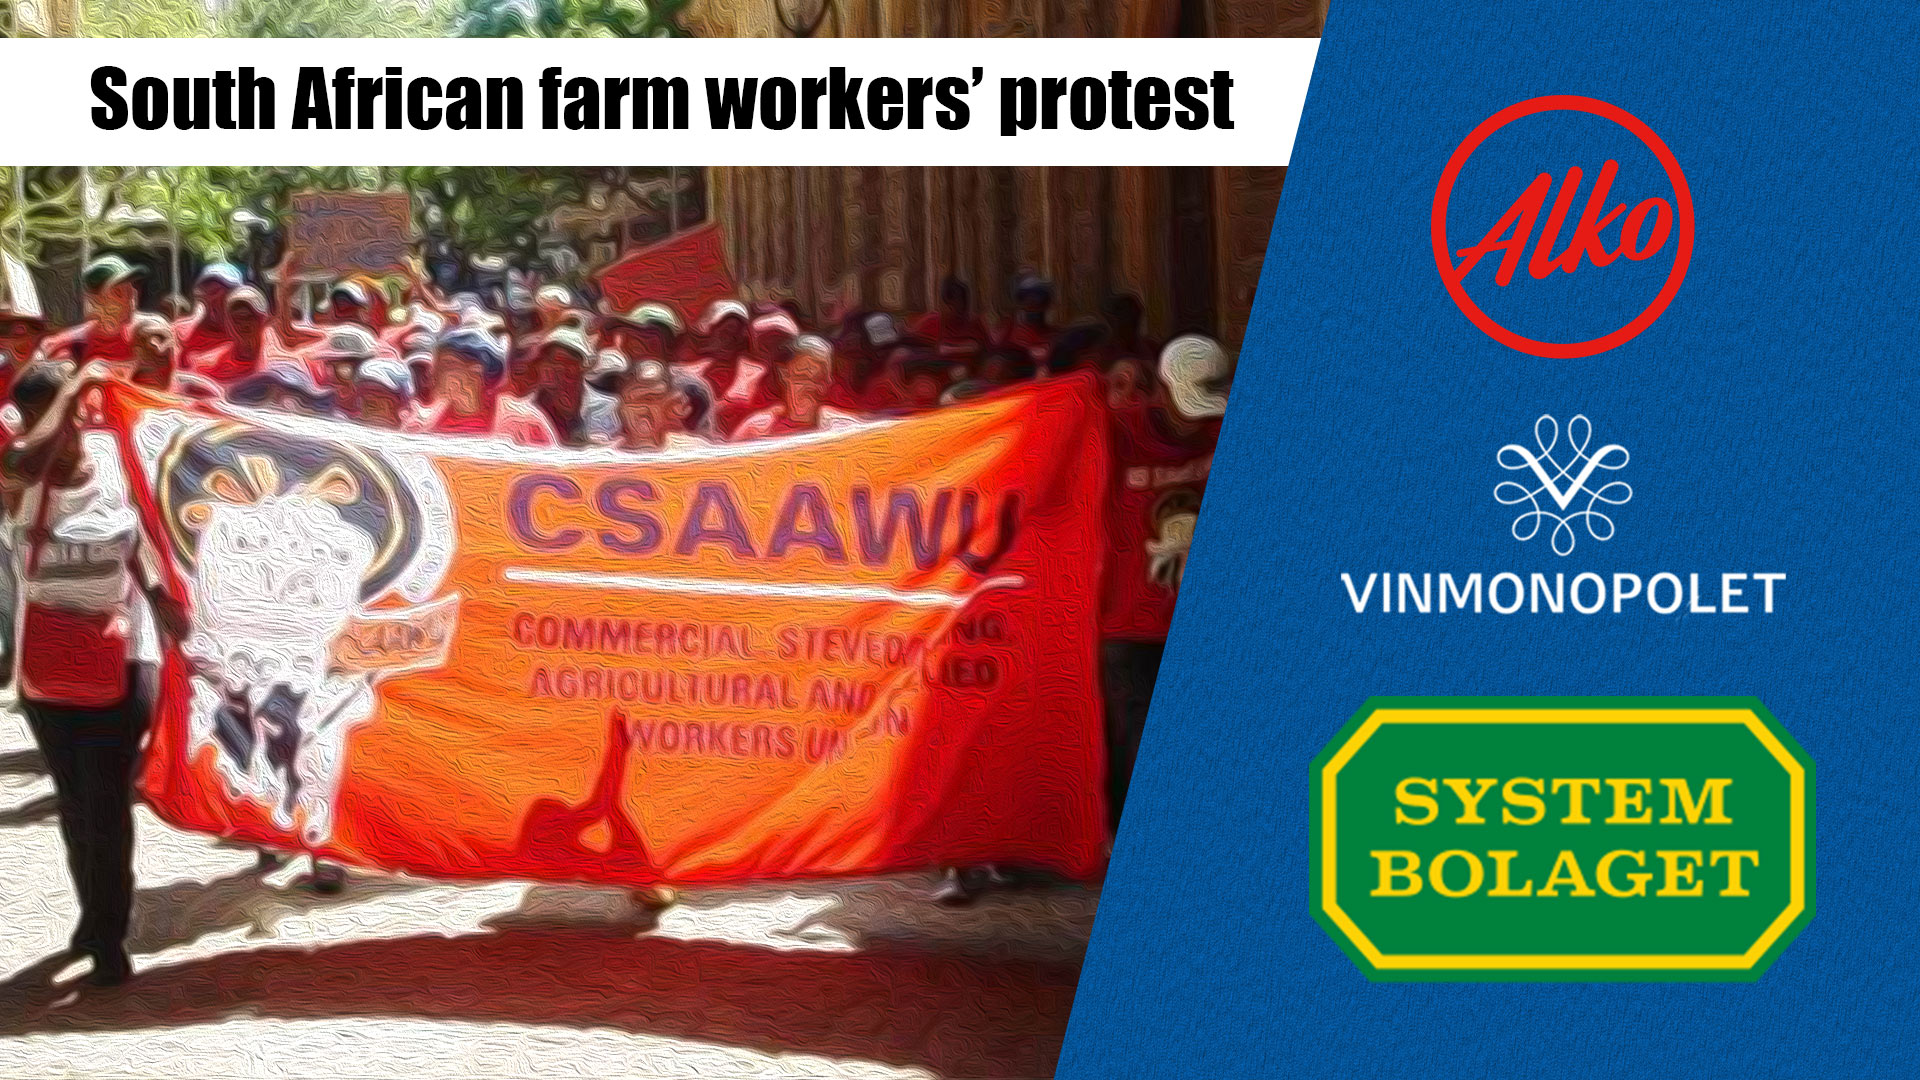 South African farm workers protest